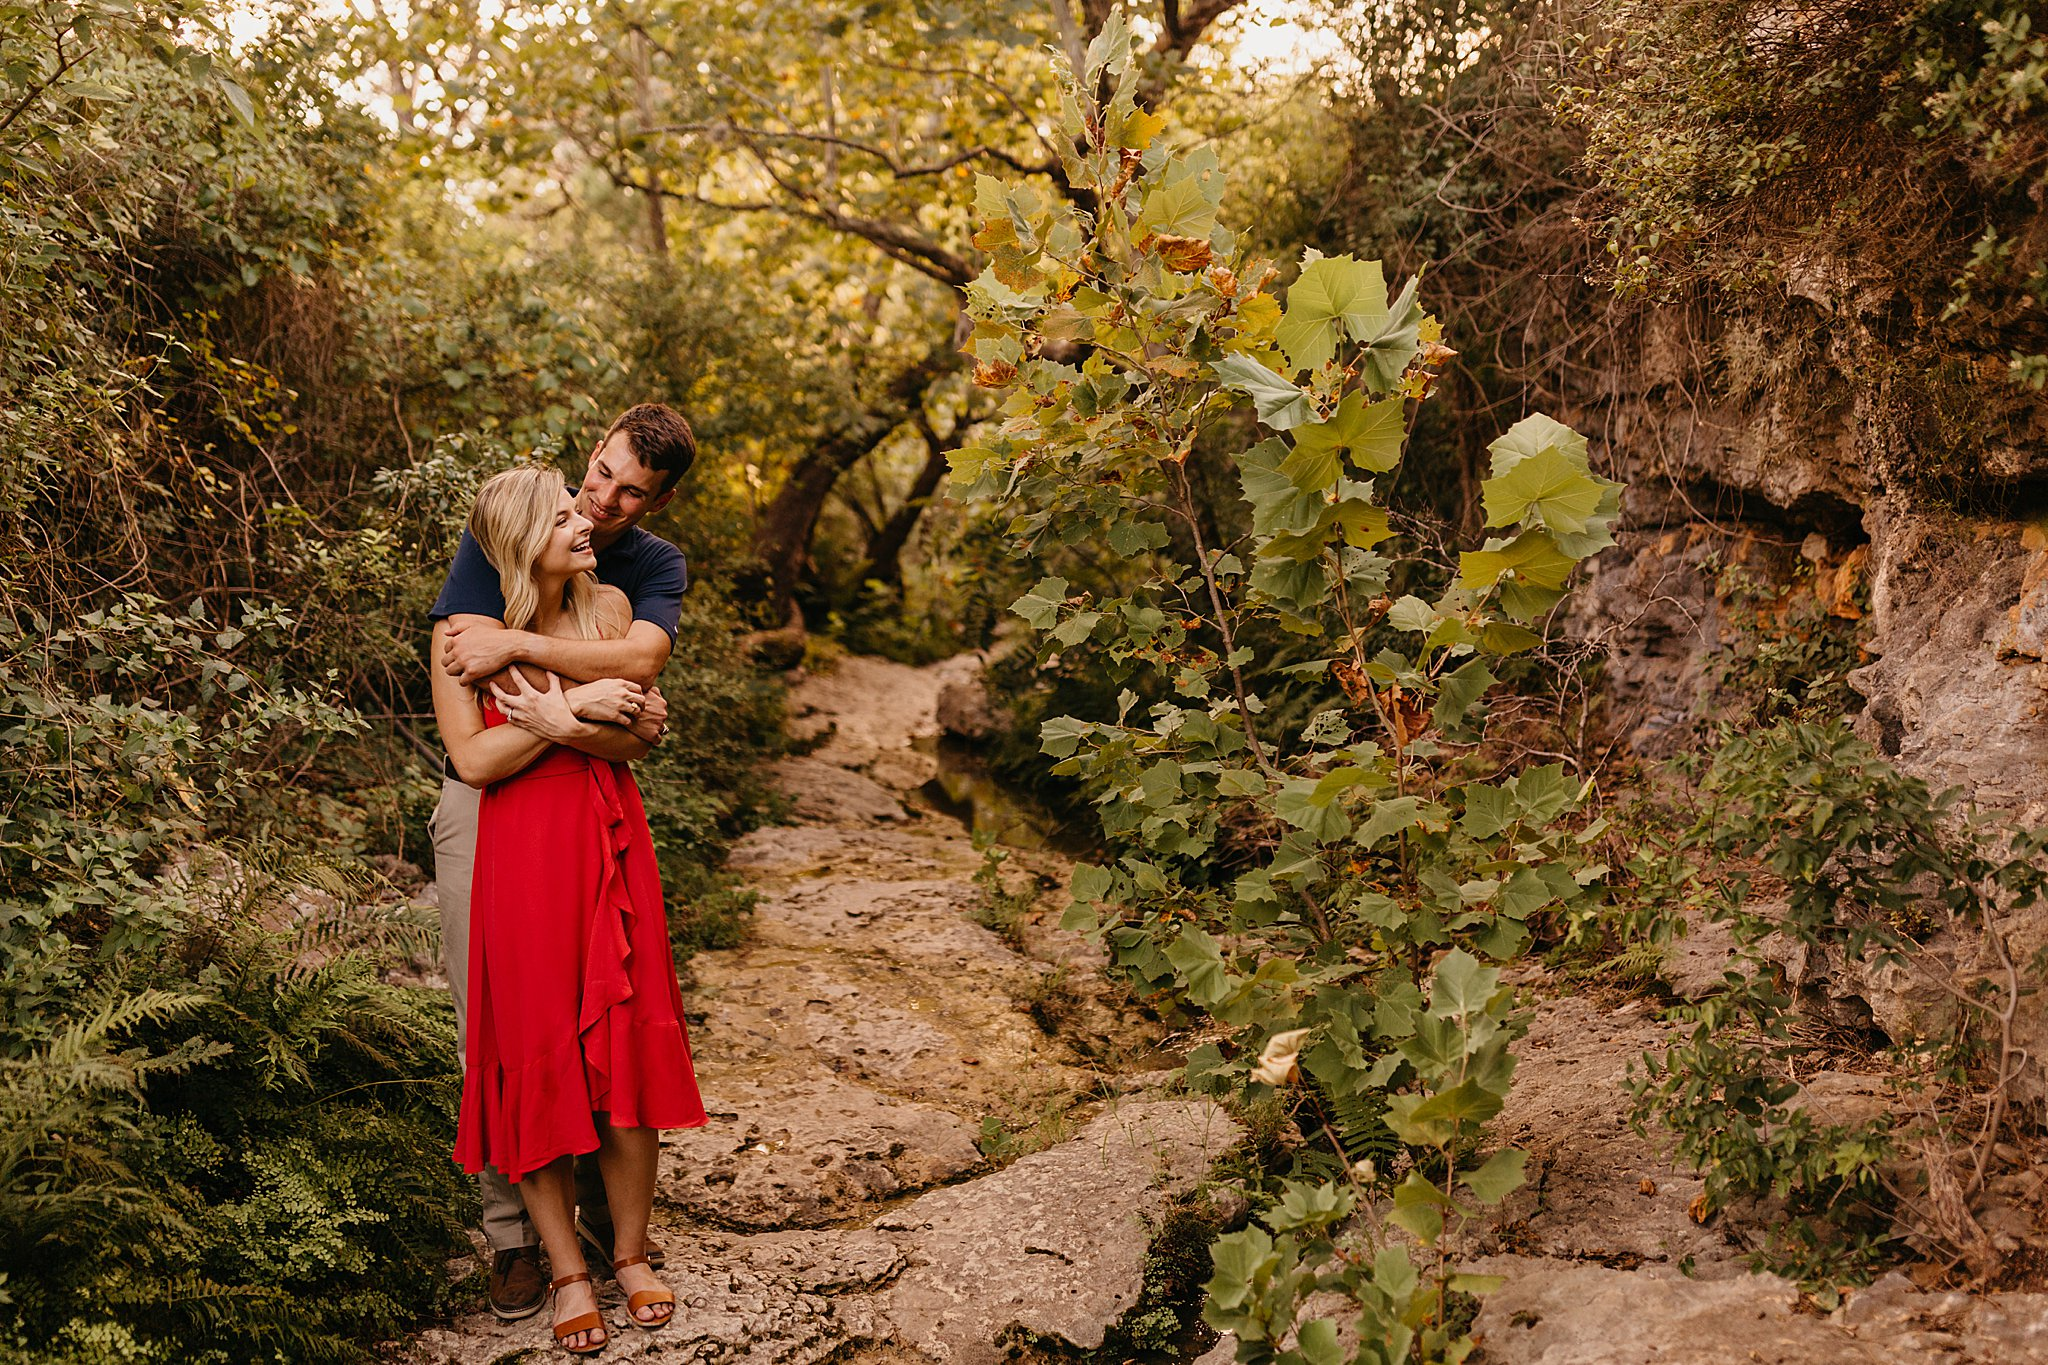 Wilderlove Co_Wedding Photographer_Dripping Springs Photography_Adventure Engagemenet_Rock Climbing Engagement_Hill Country Photographer_North Texas Photographer_0015.jpg